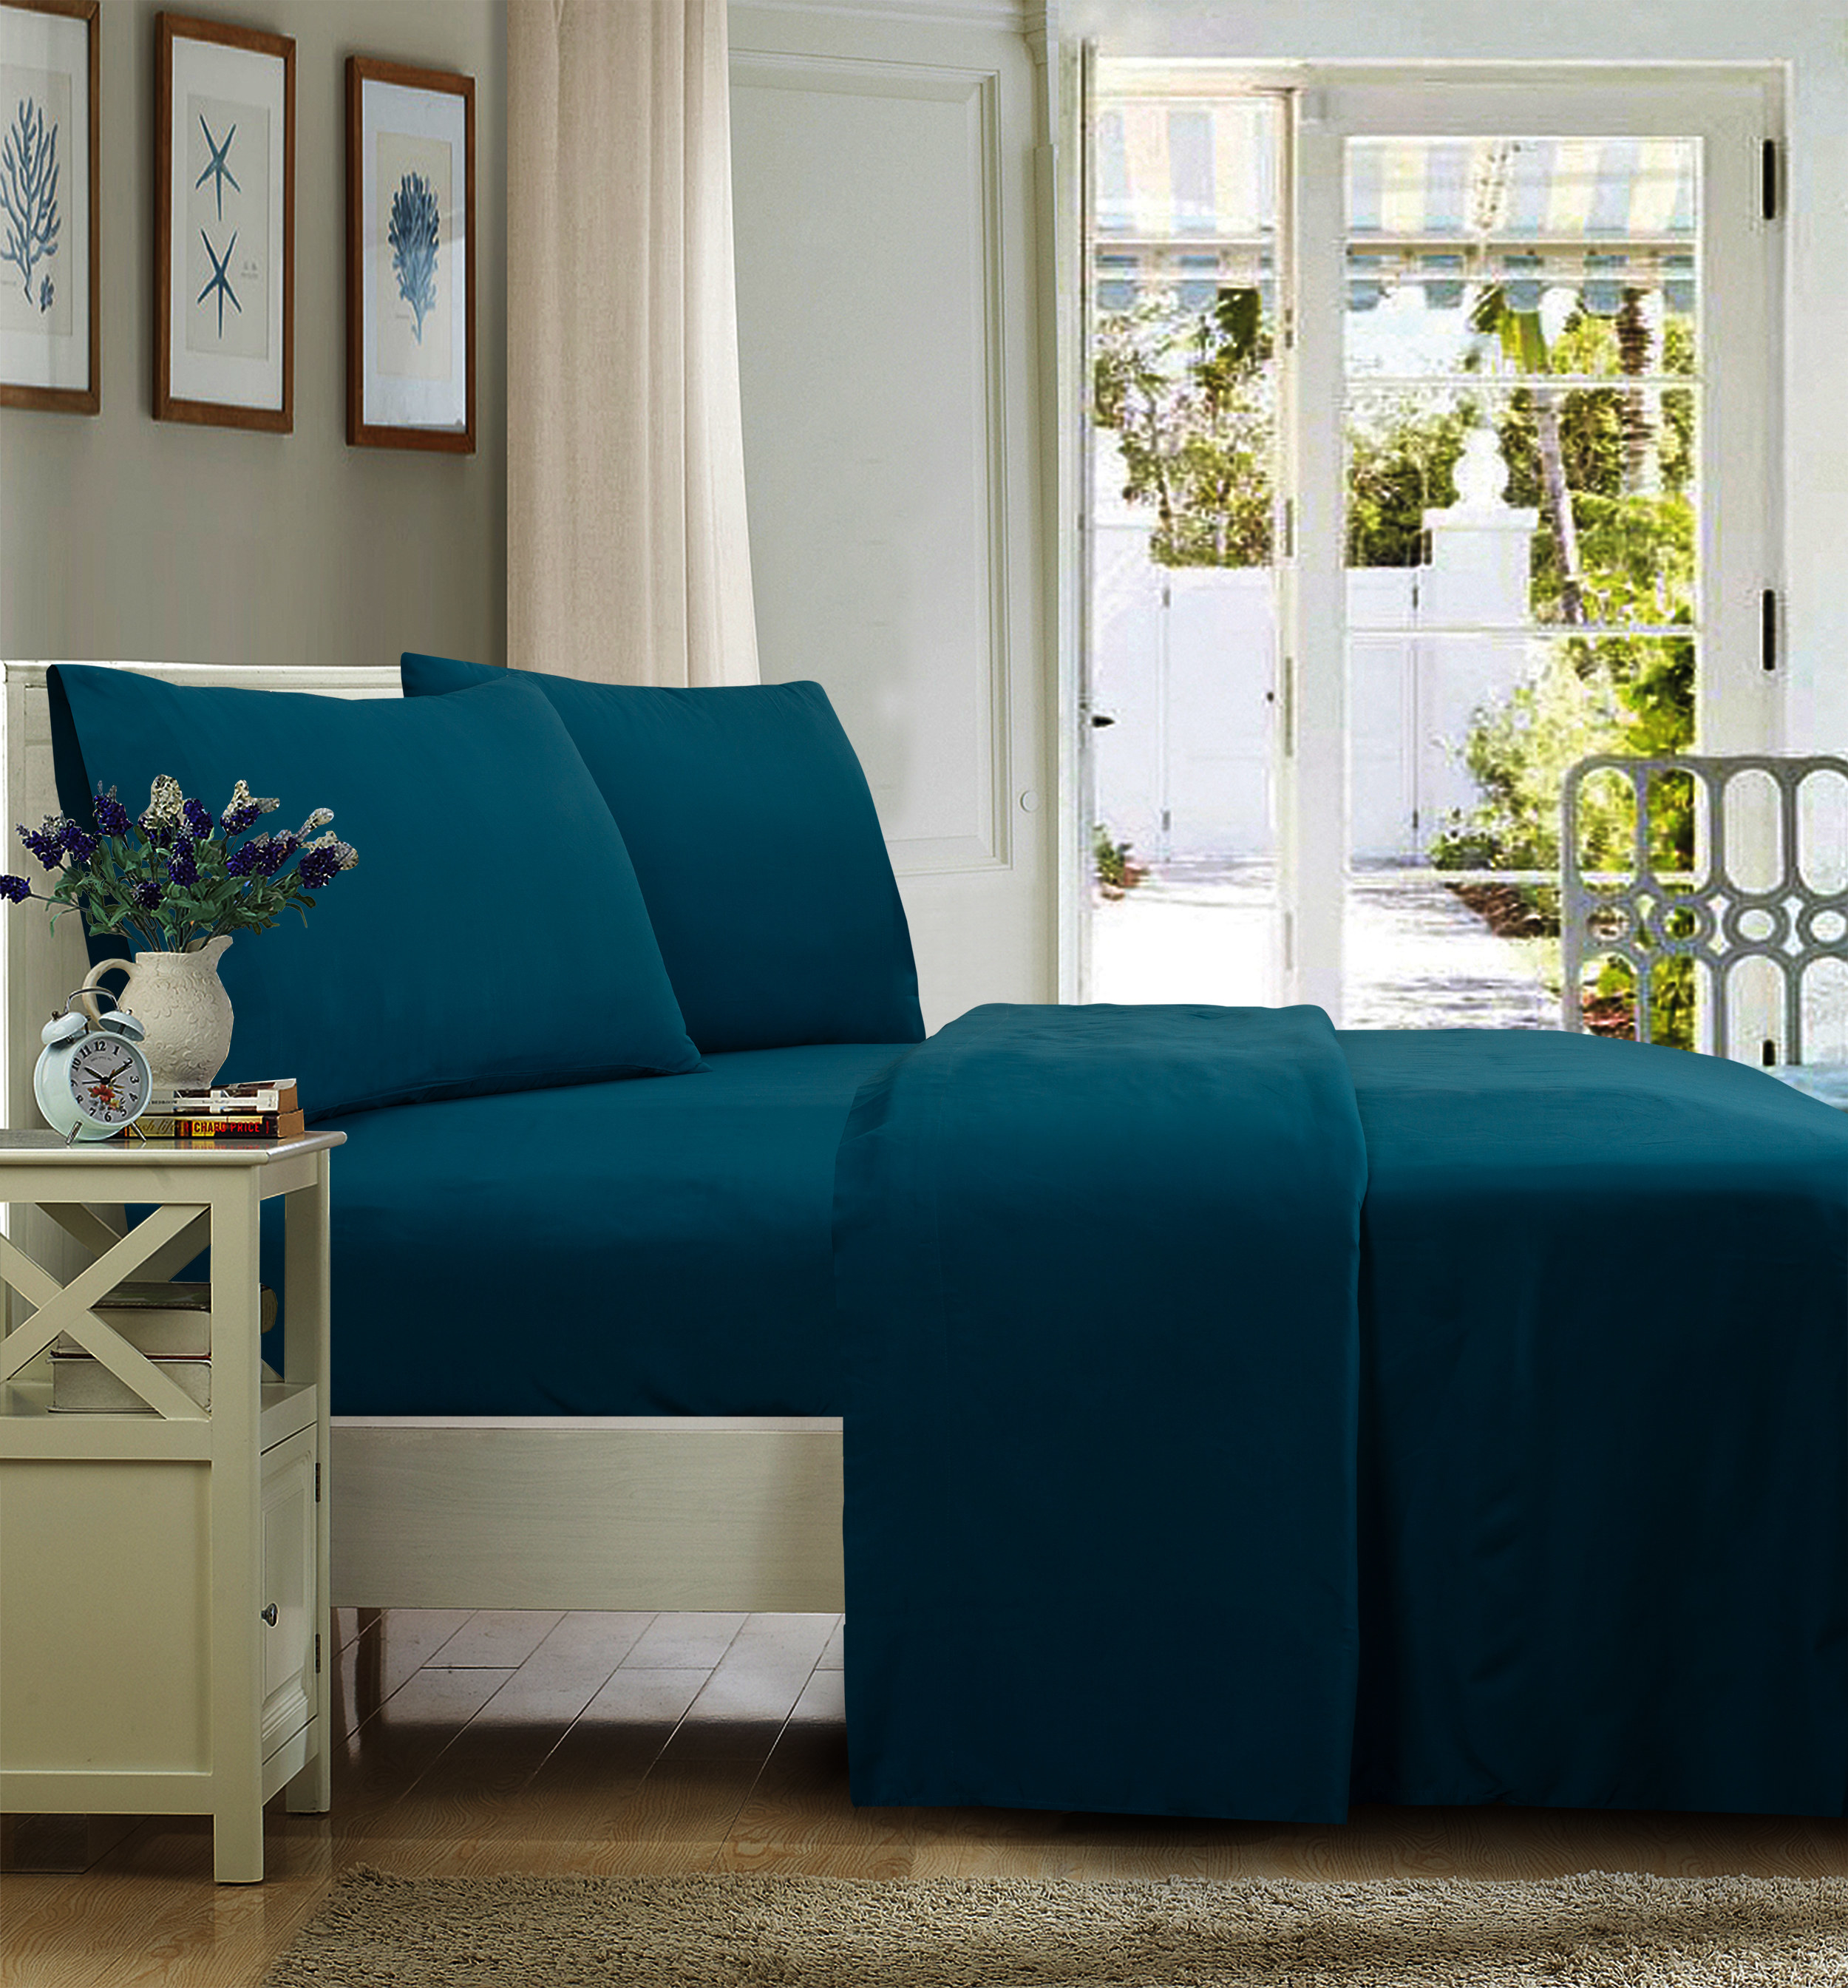 The wrinkle-resistant sheets in dark teal on a bed